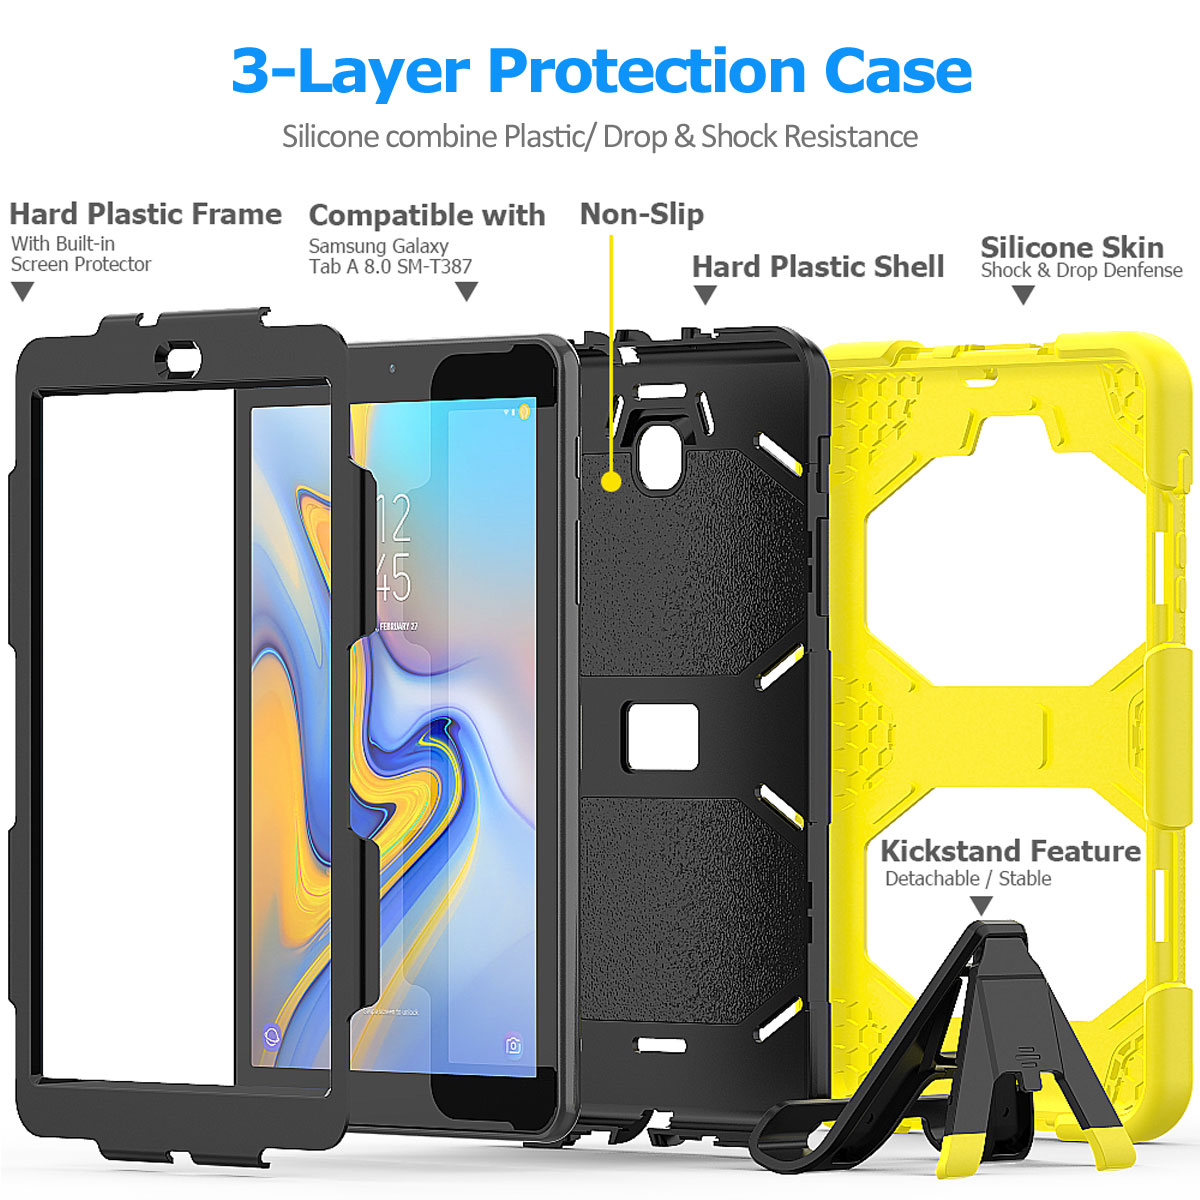 Rugged-Hard-Case-For-Samsung-Galaxy-Tab-A-8-0-2018-SM-T387-with-Screen-Protector thumbnail 70